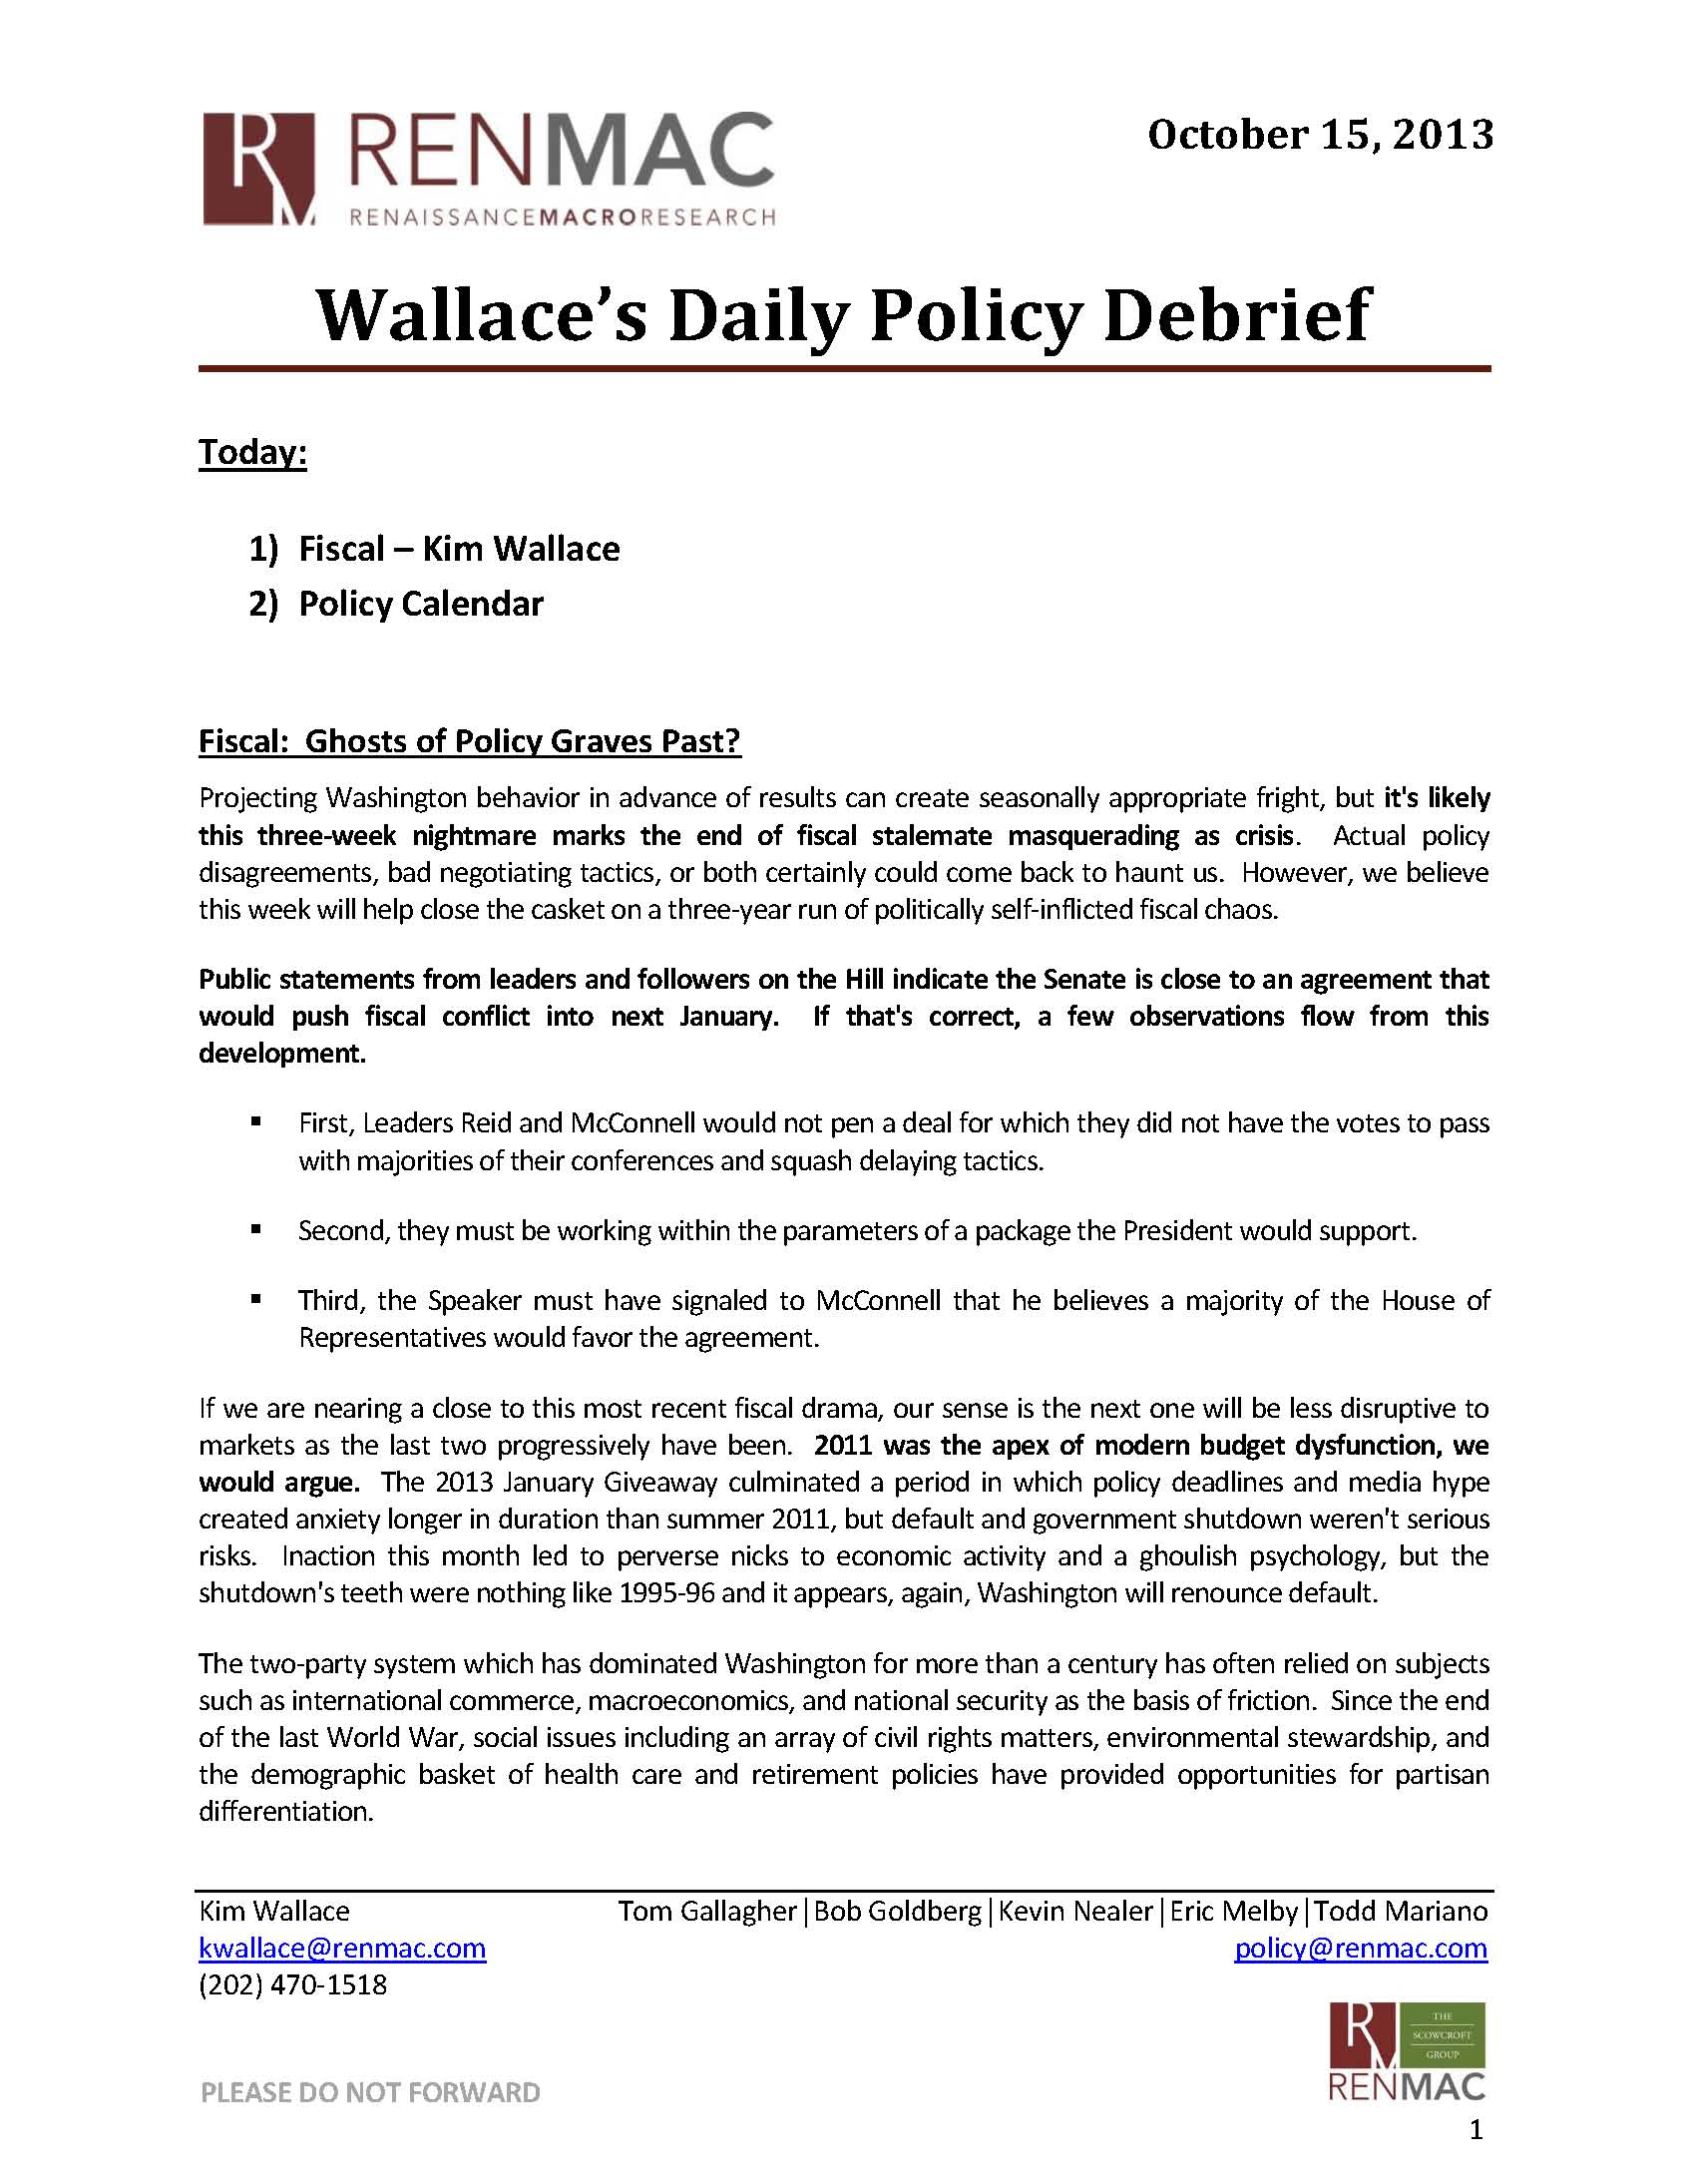 Wallace's Daily Policy Debrief 10/15/2013